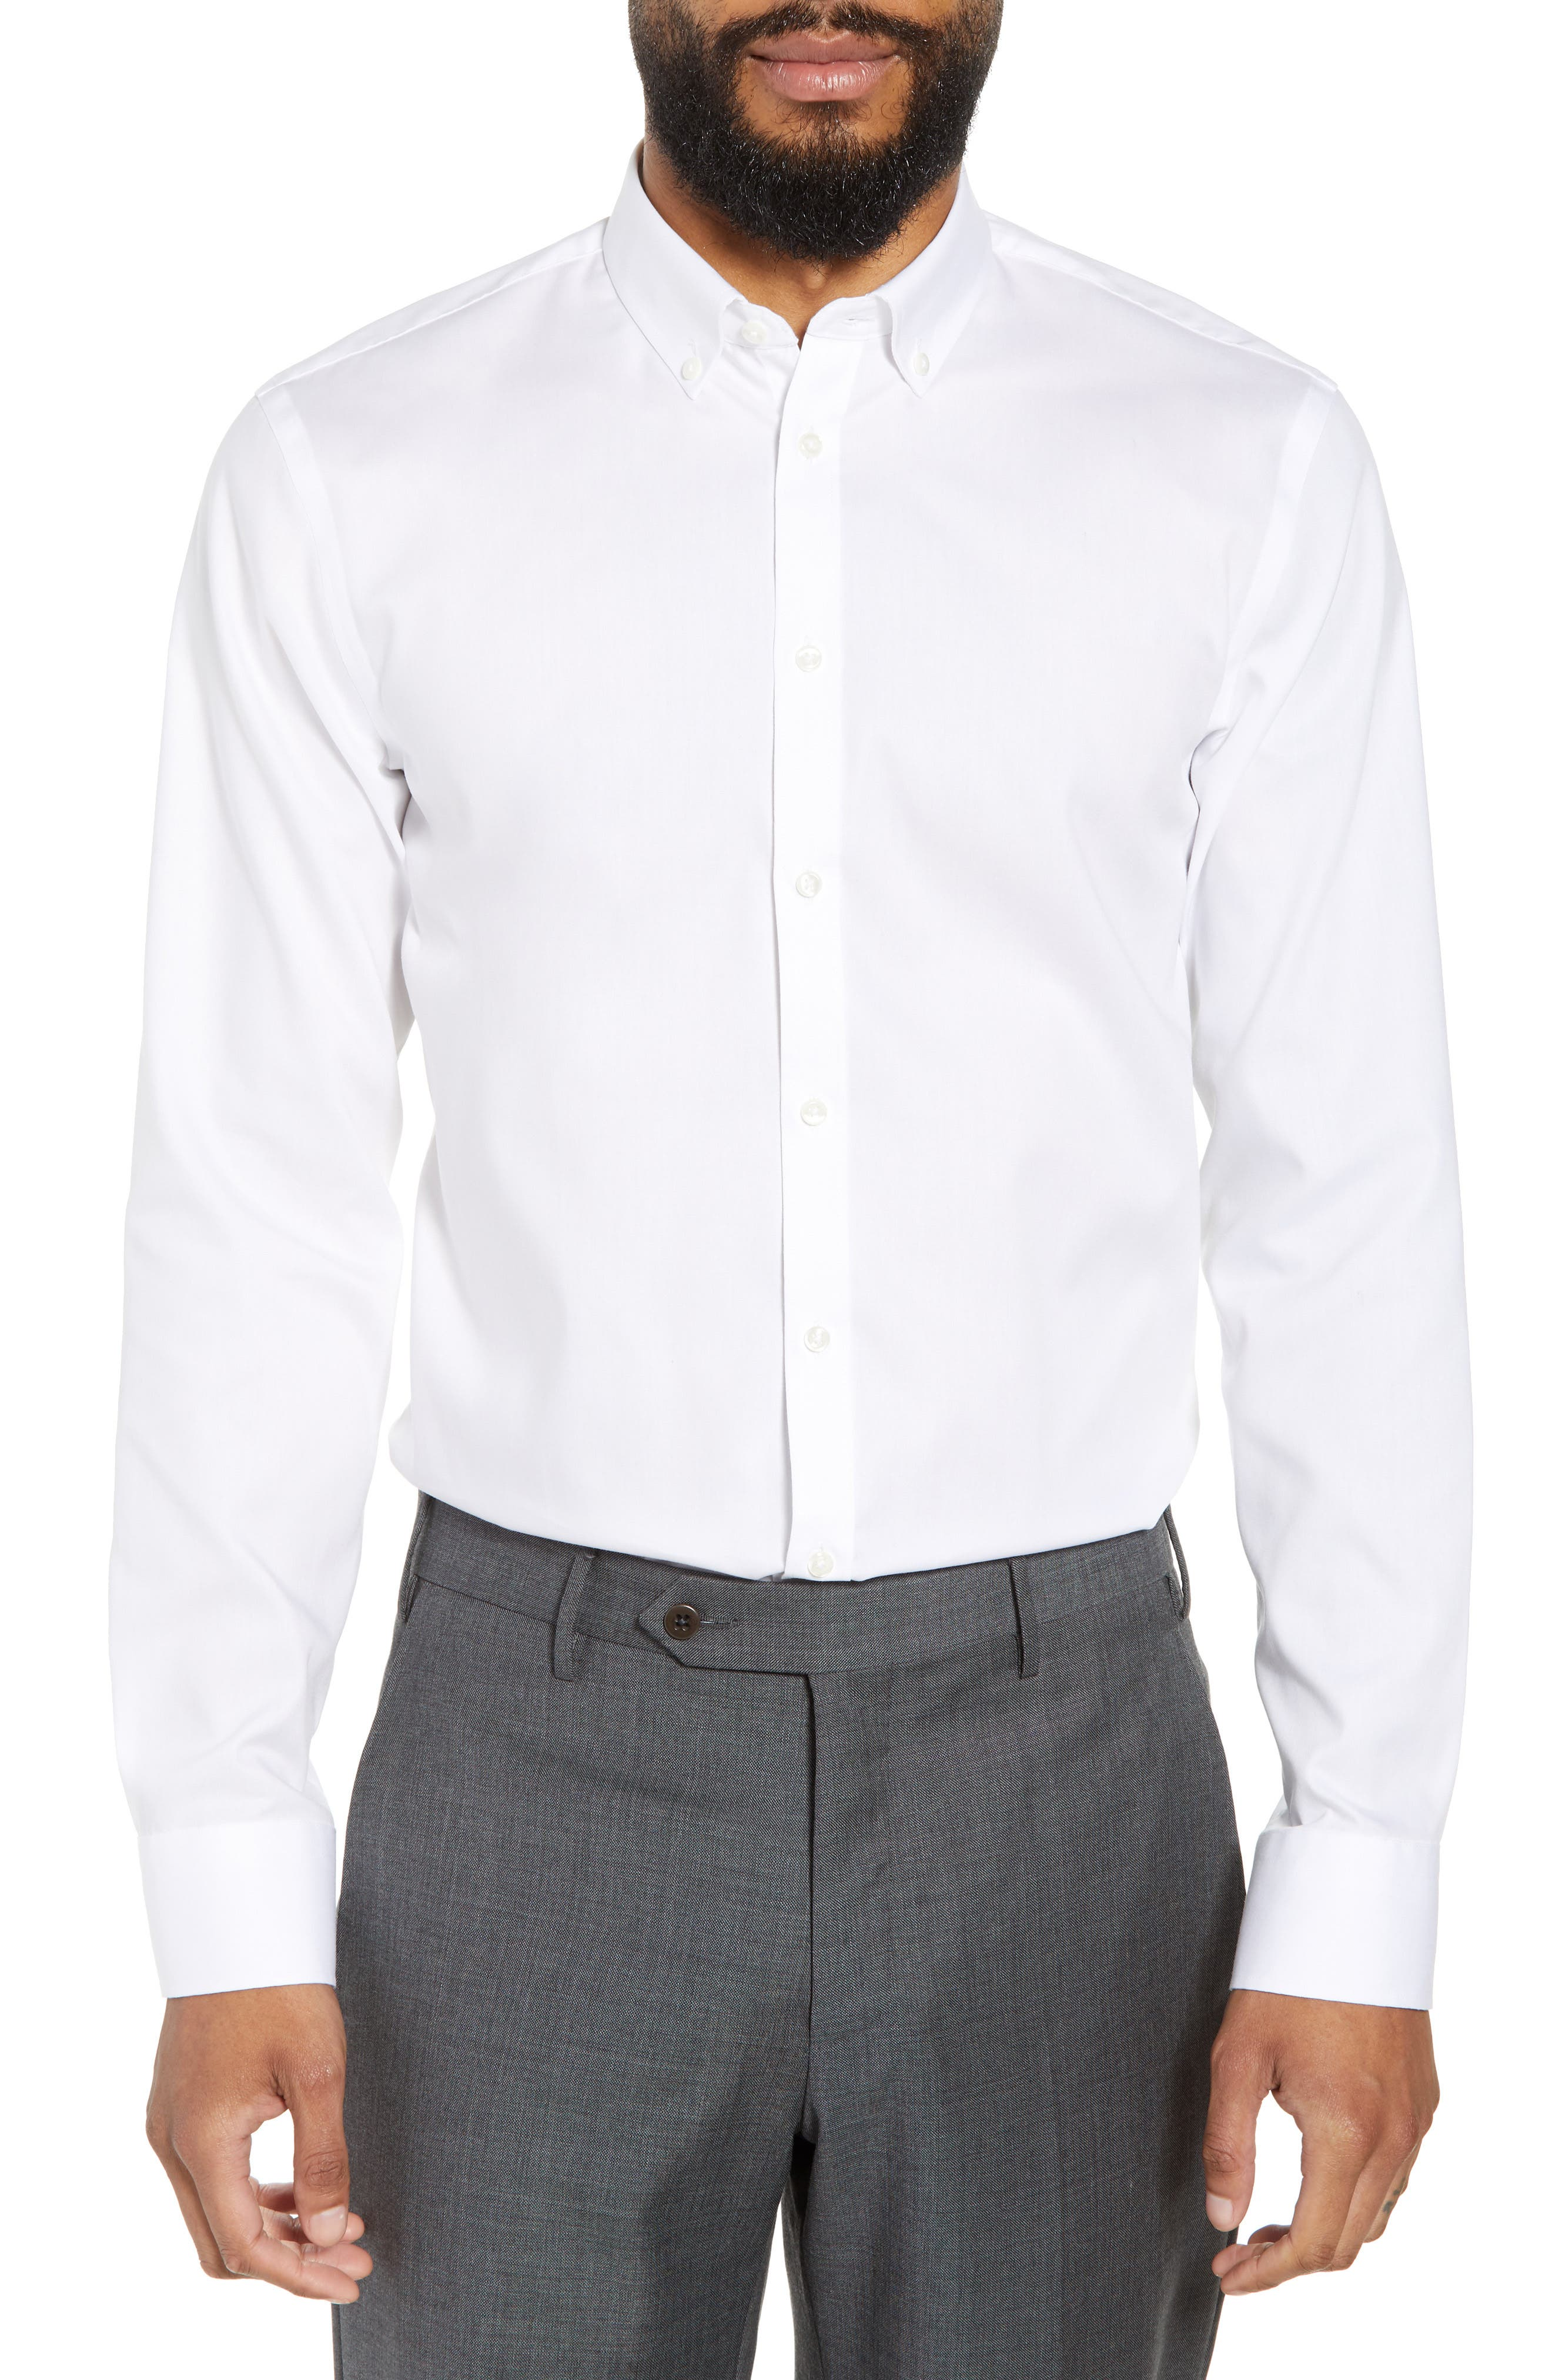 Extra Trim Fit Non-Iron Solid Dress Shirt,                         Main,                         color, White